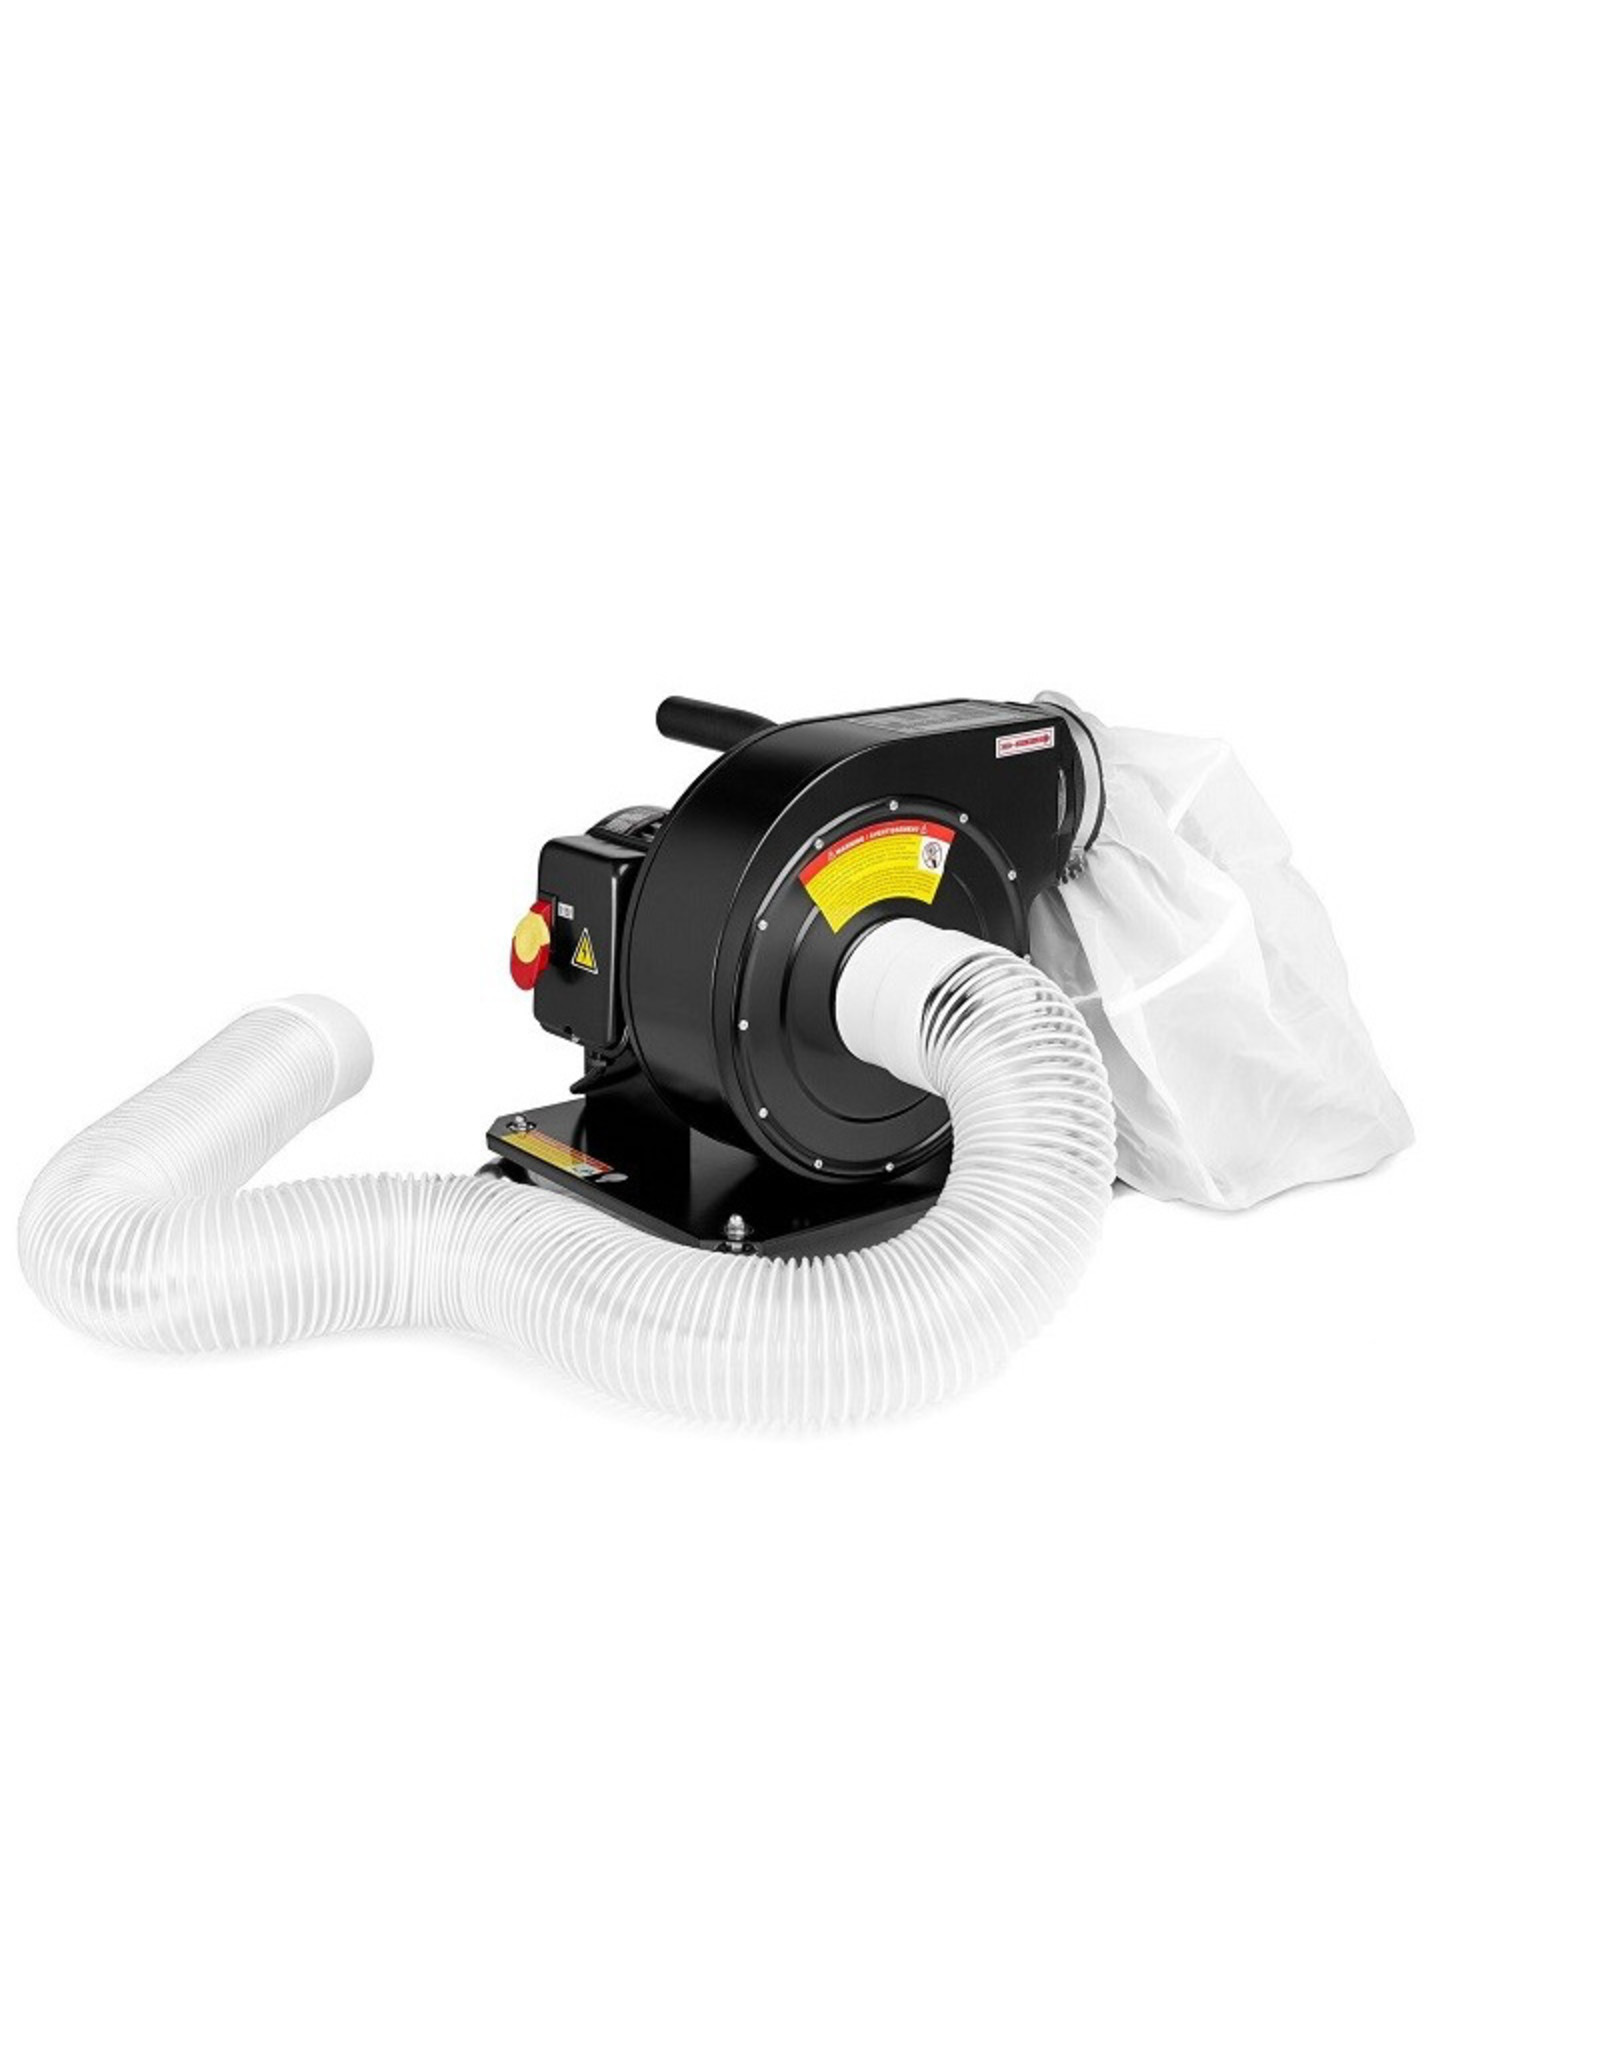 TWISTER TWISTER T6 TRIMMER